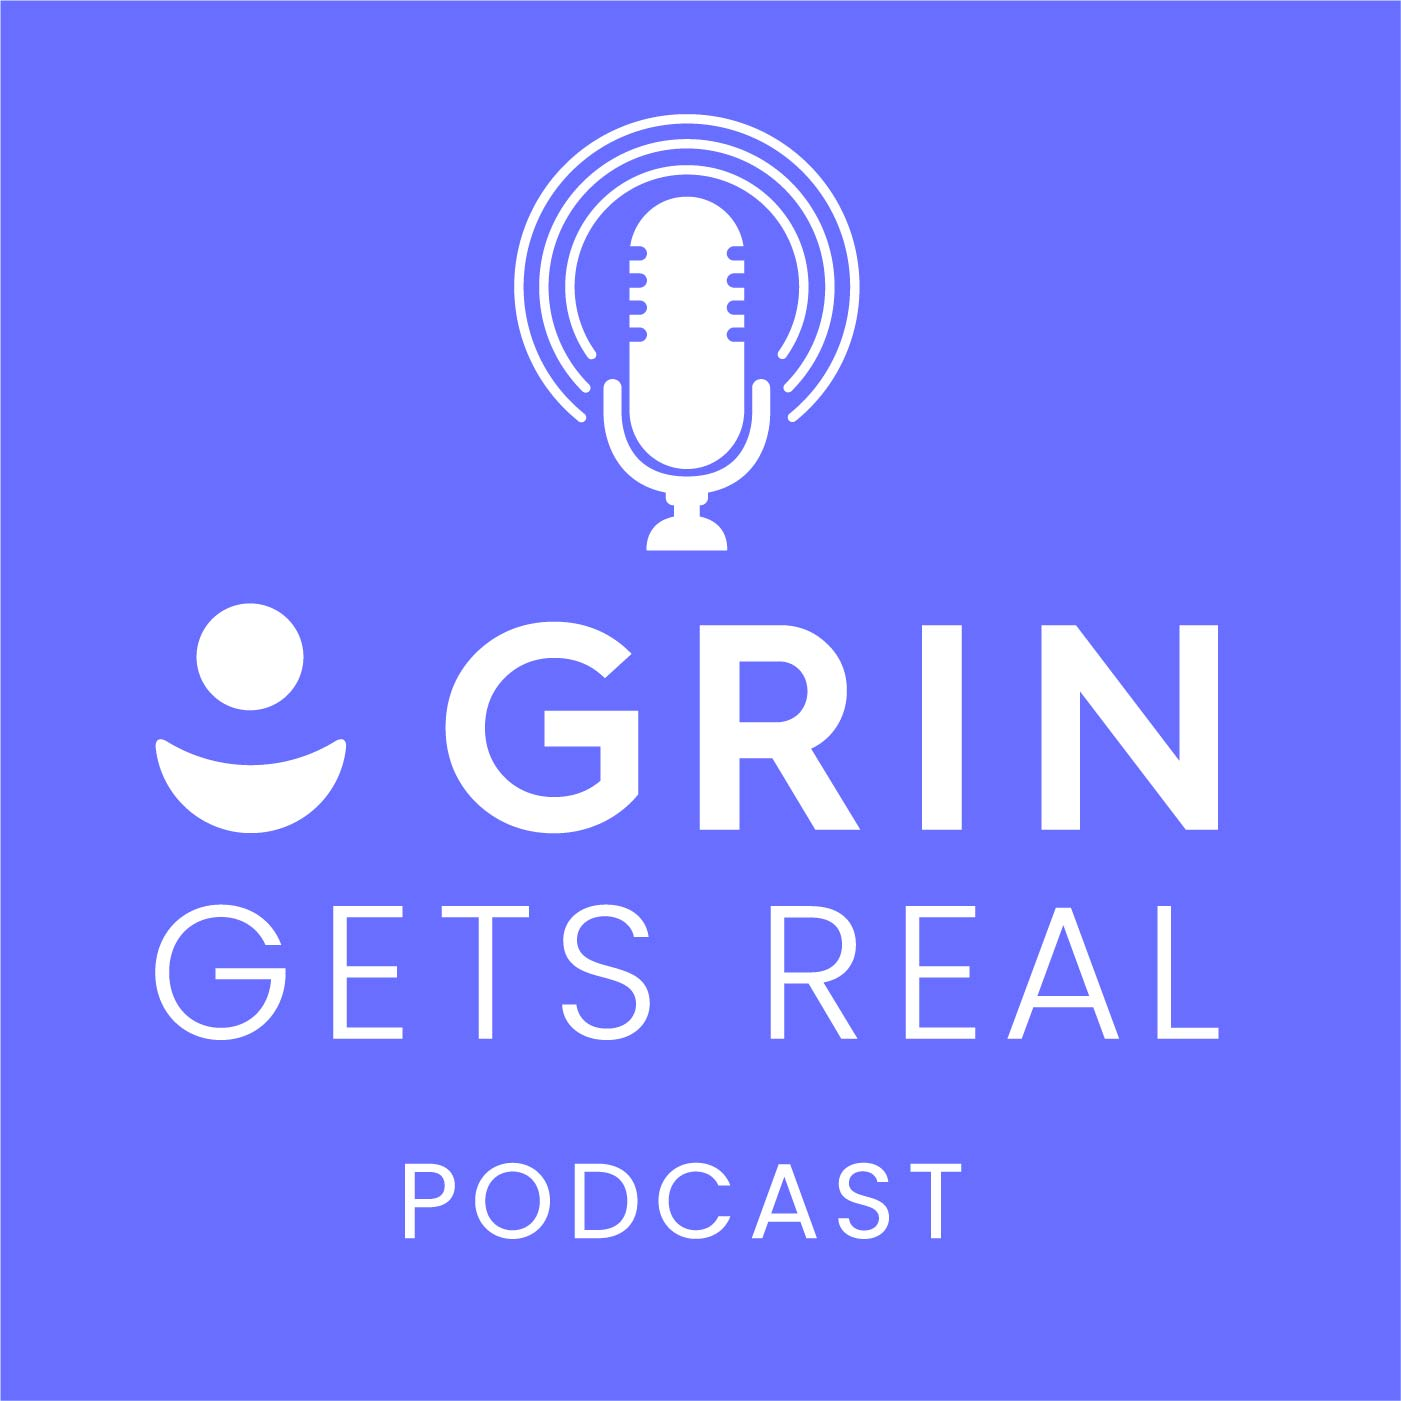 influencer marketing and ecommerce marketing podcast GRIN gets real